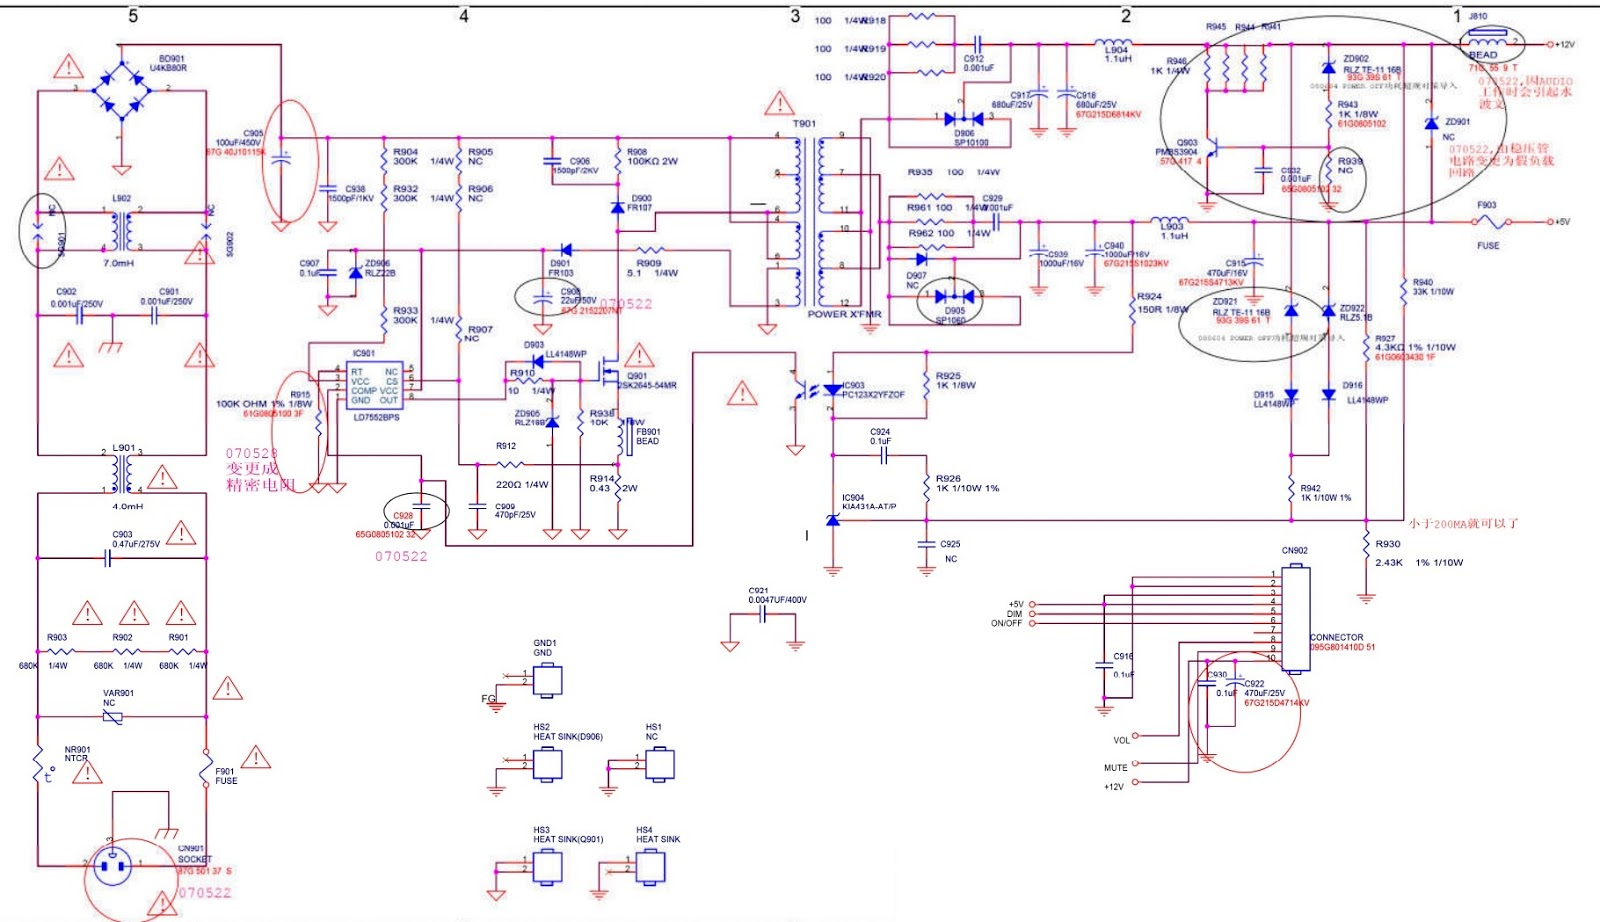 Twos  plement Using Only Logic Gates as well Wiring Of Distribution Board Single furthermore 2 also Detalle likewise Aoc 2216sa 22 Inch Lcd Monitor Smps. on inverter circuit diagram